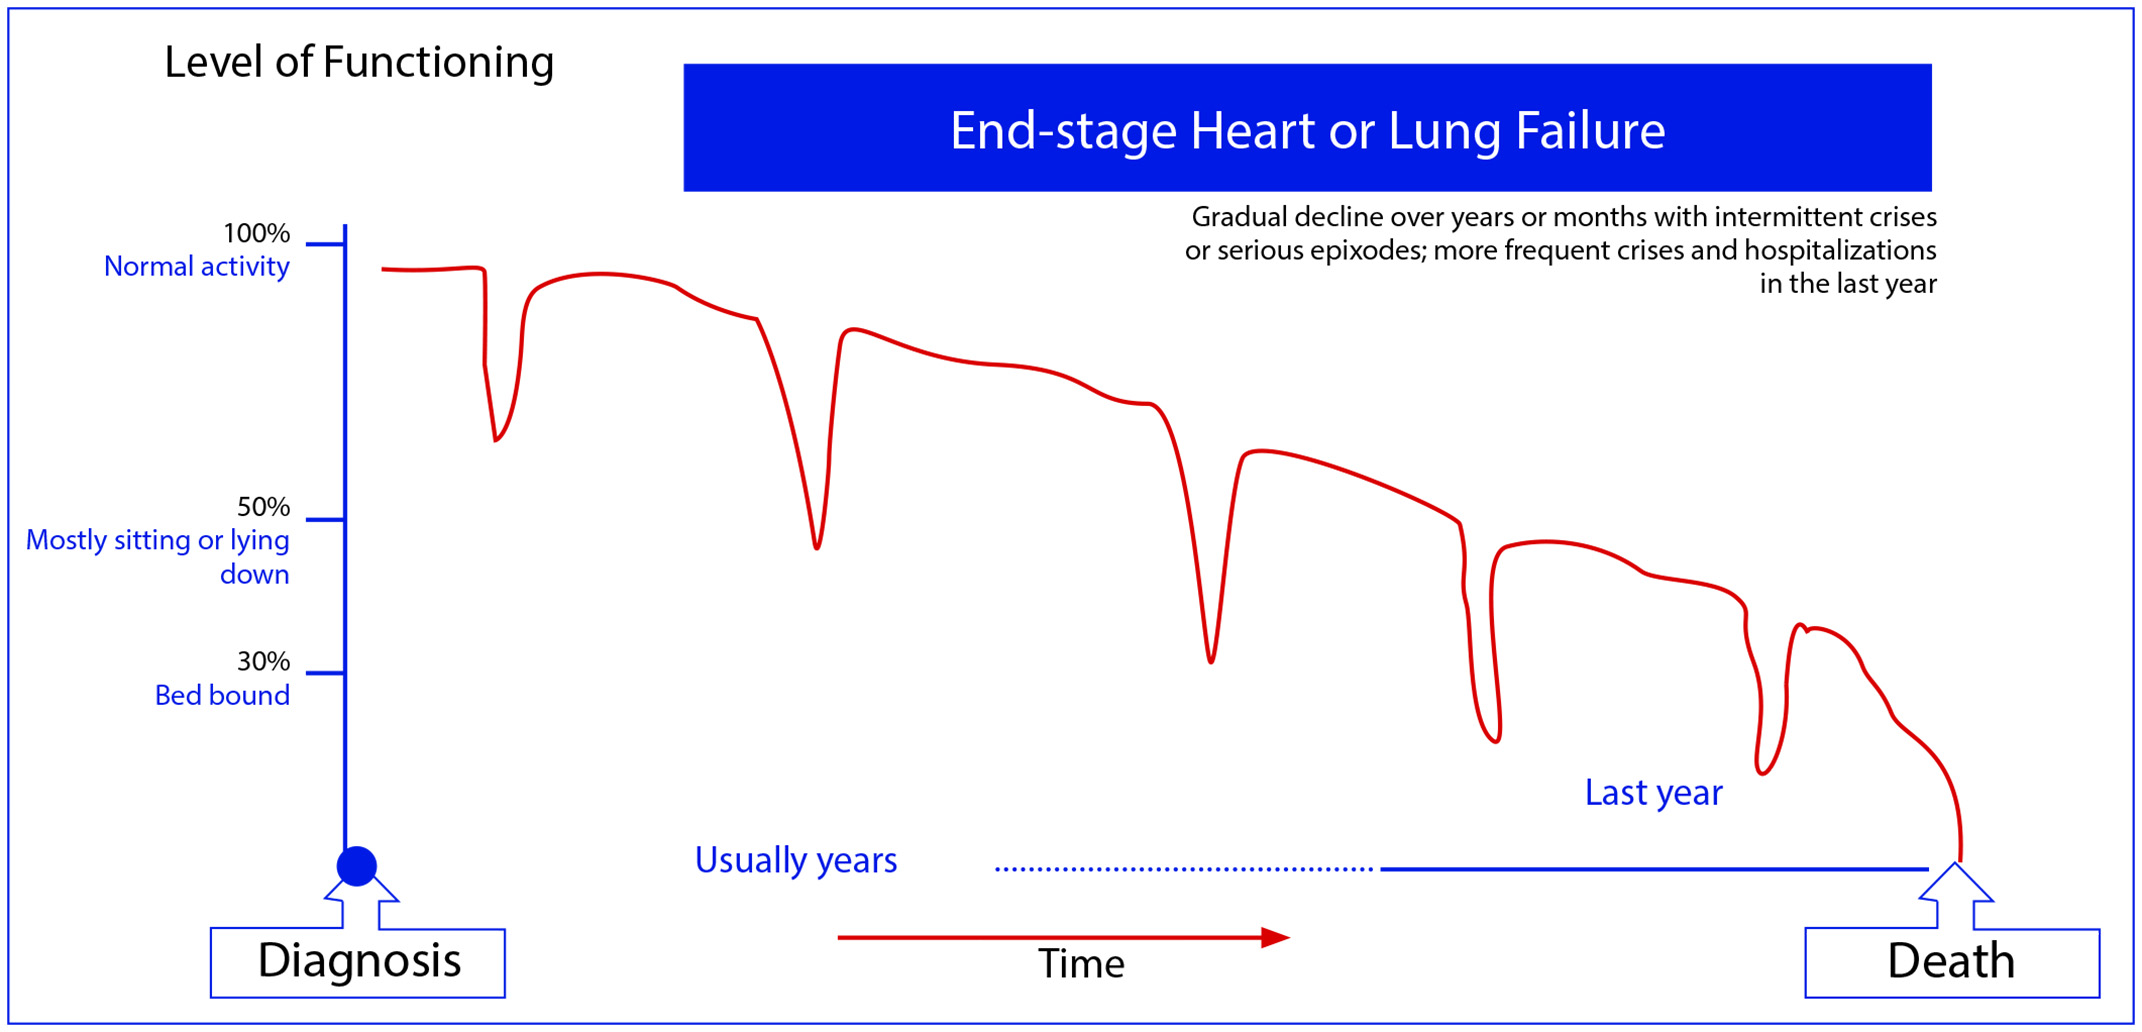 Heart and Lung Disease Trajectory